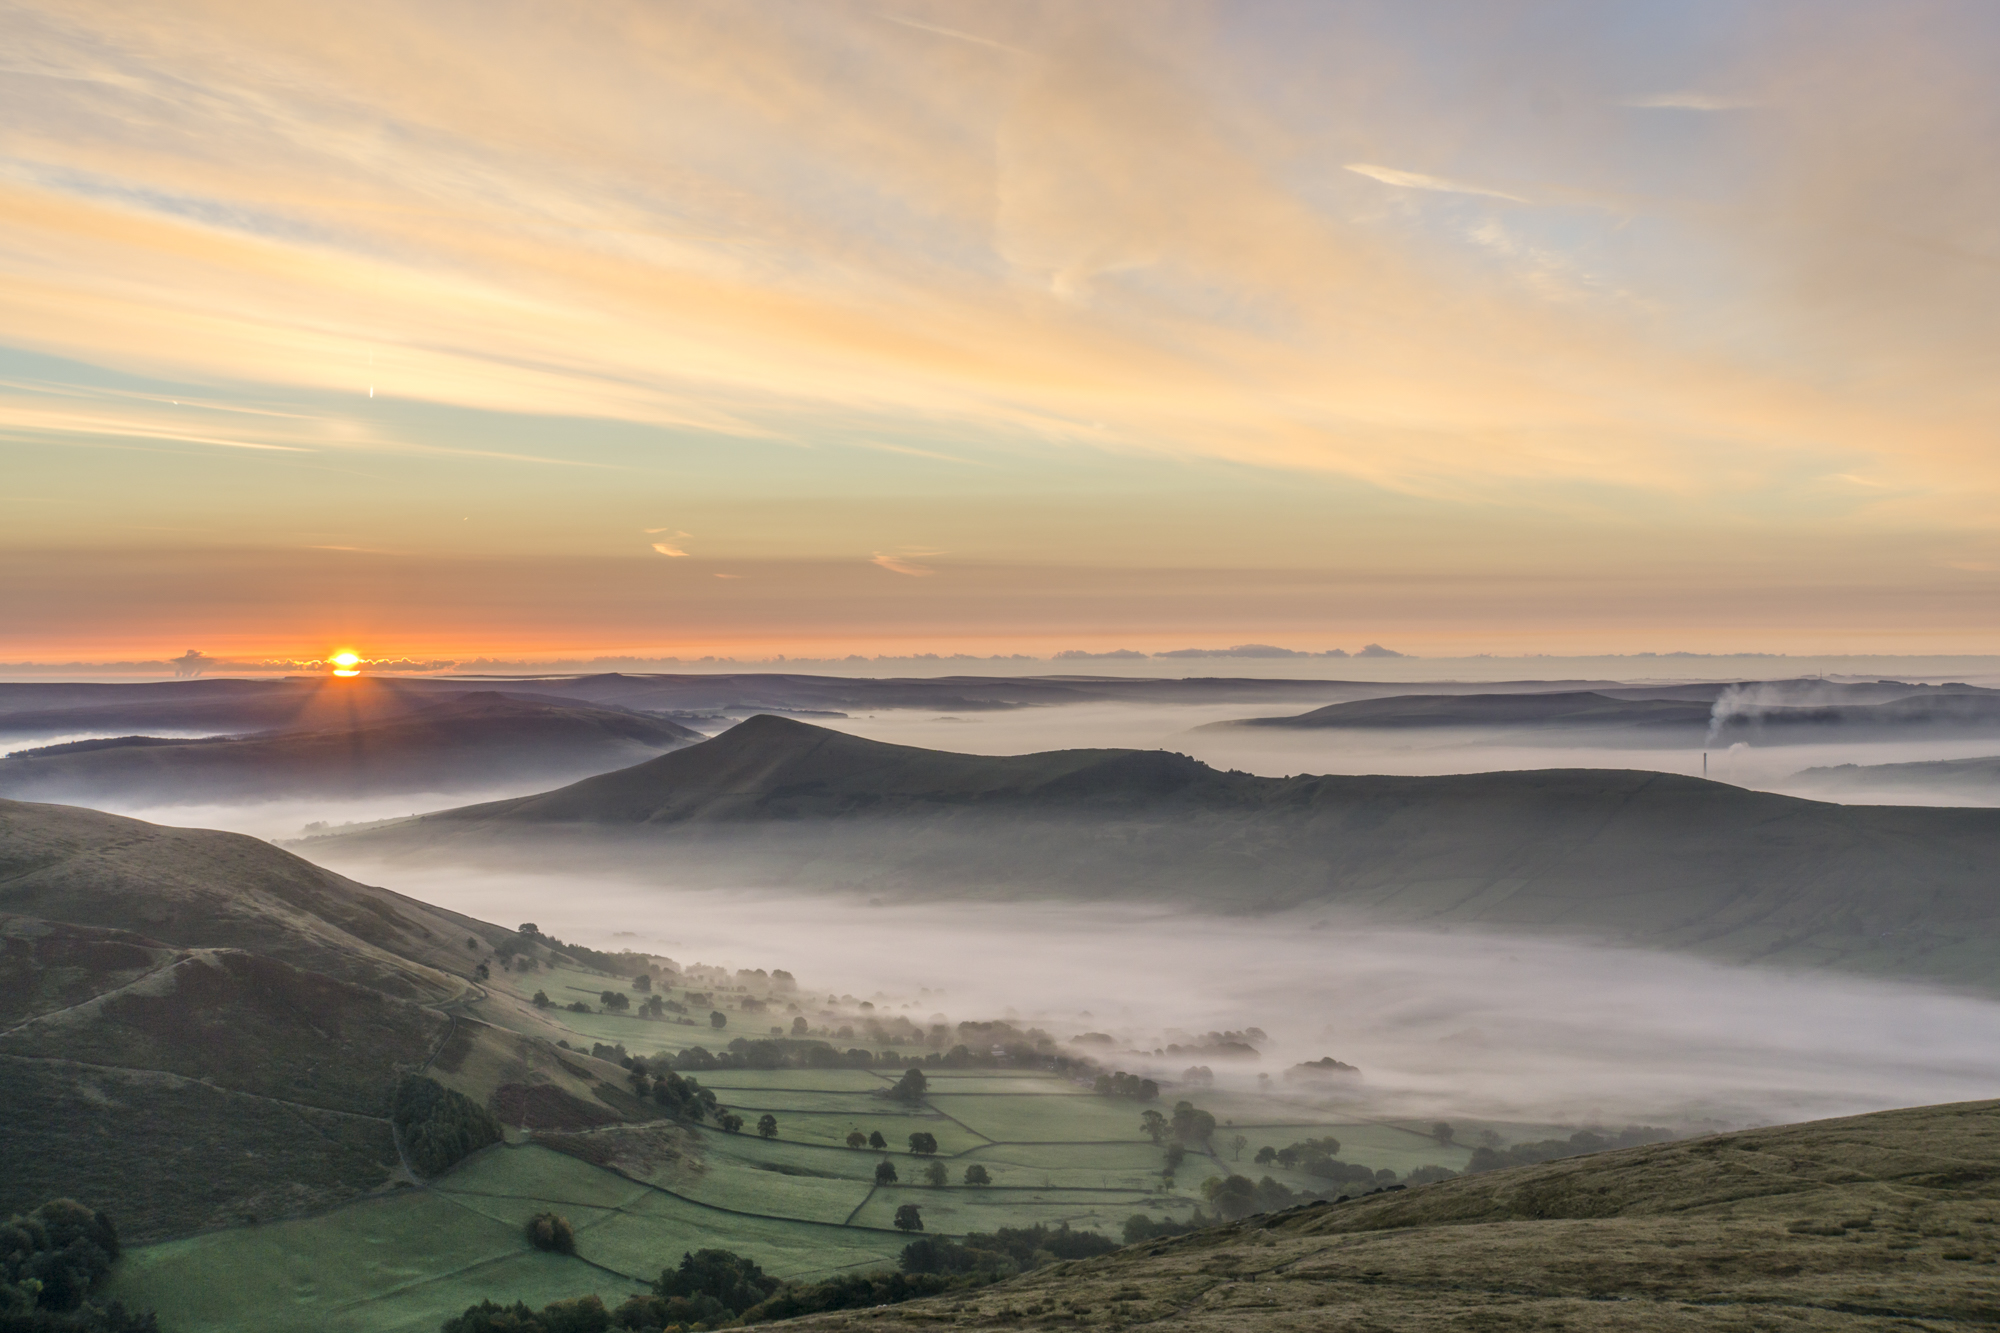 Looking down on Edale and across to the Great Ridge and Win Hill. © Mick Ryan